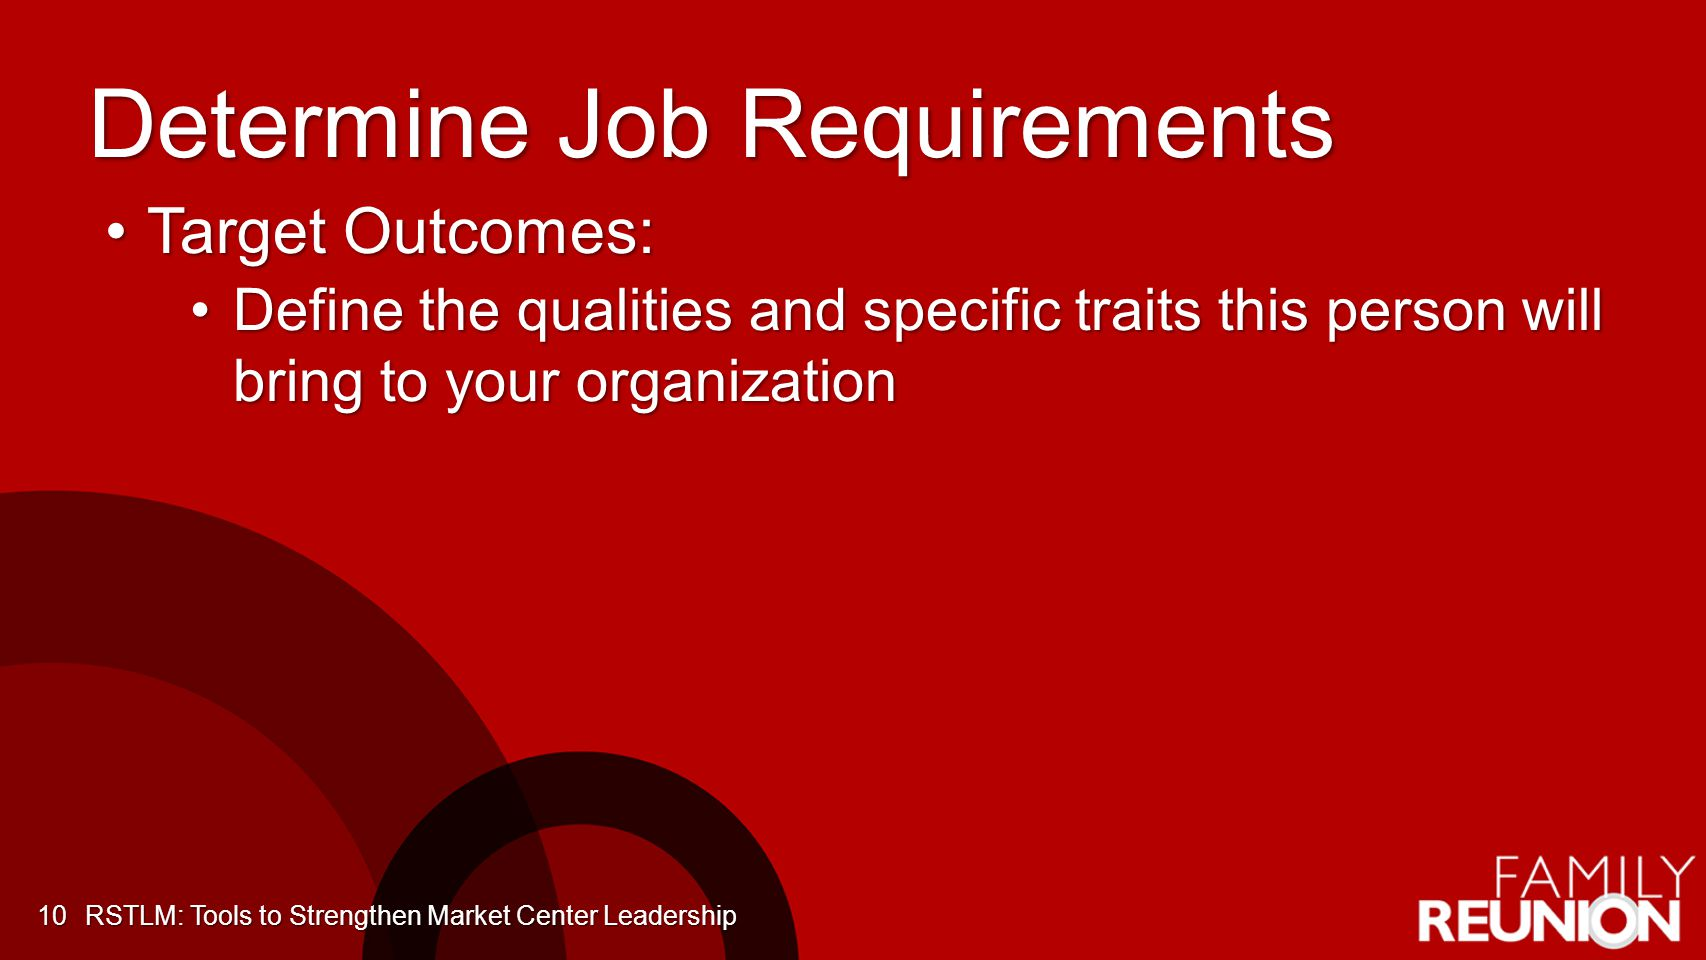 Determine Job Requirements Target Outcomes:Target Outcomes: Define the qualities and specific traits this person will bring to your organizationDefine the qualities and specific traits this person will bring to your organization 10RSTLM: Tools to Strengthen Market Center Leadership